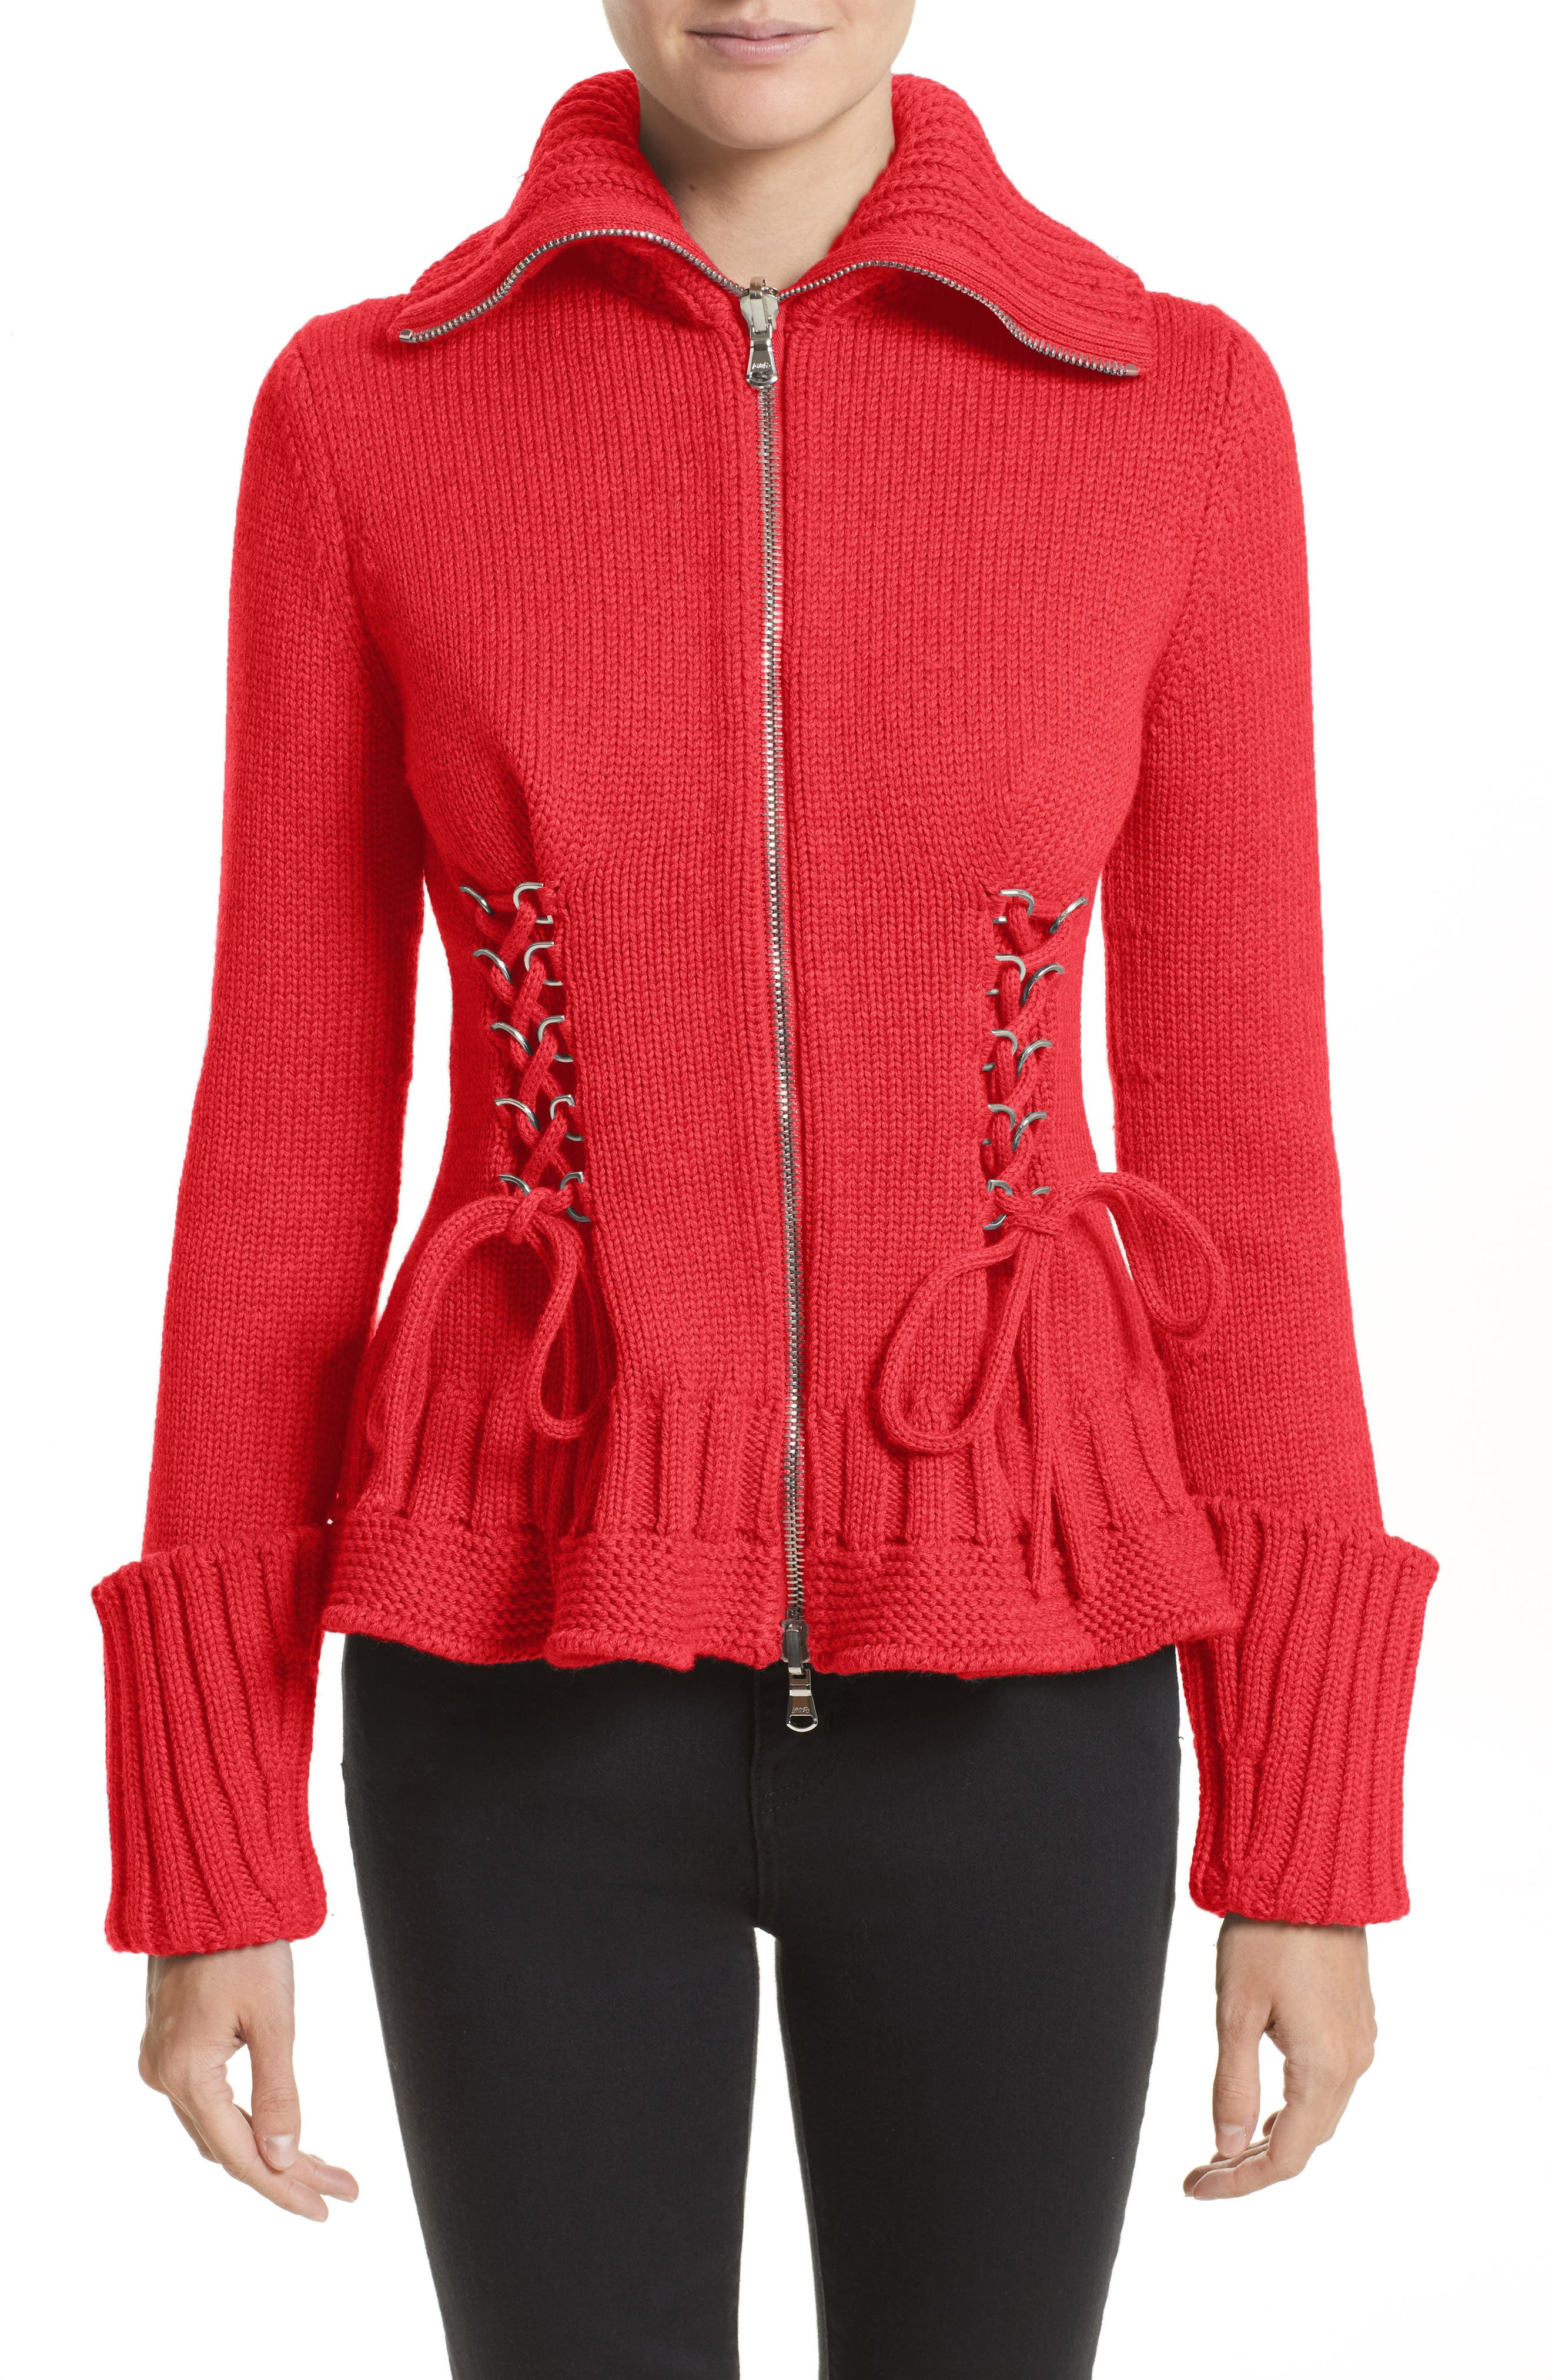 Main Image - Alexander McQueen Lace-Up Wool Cardigan